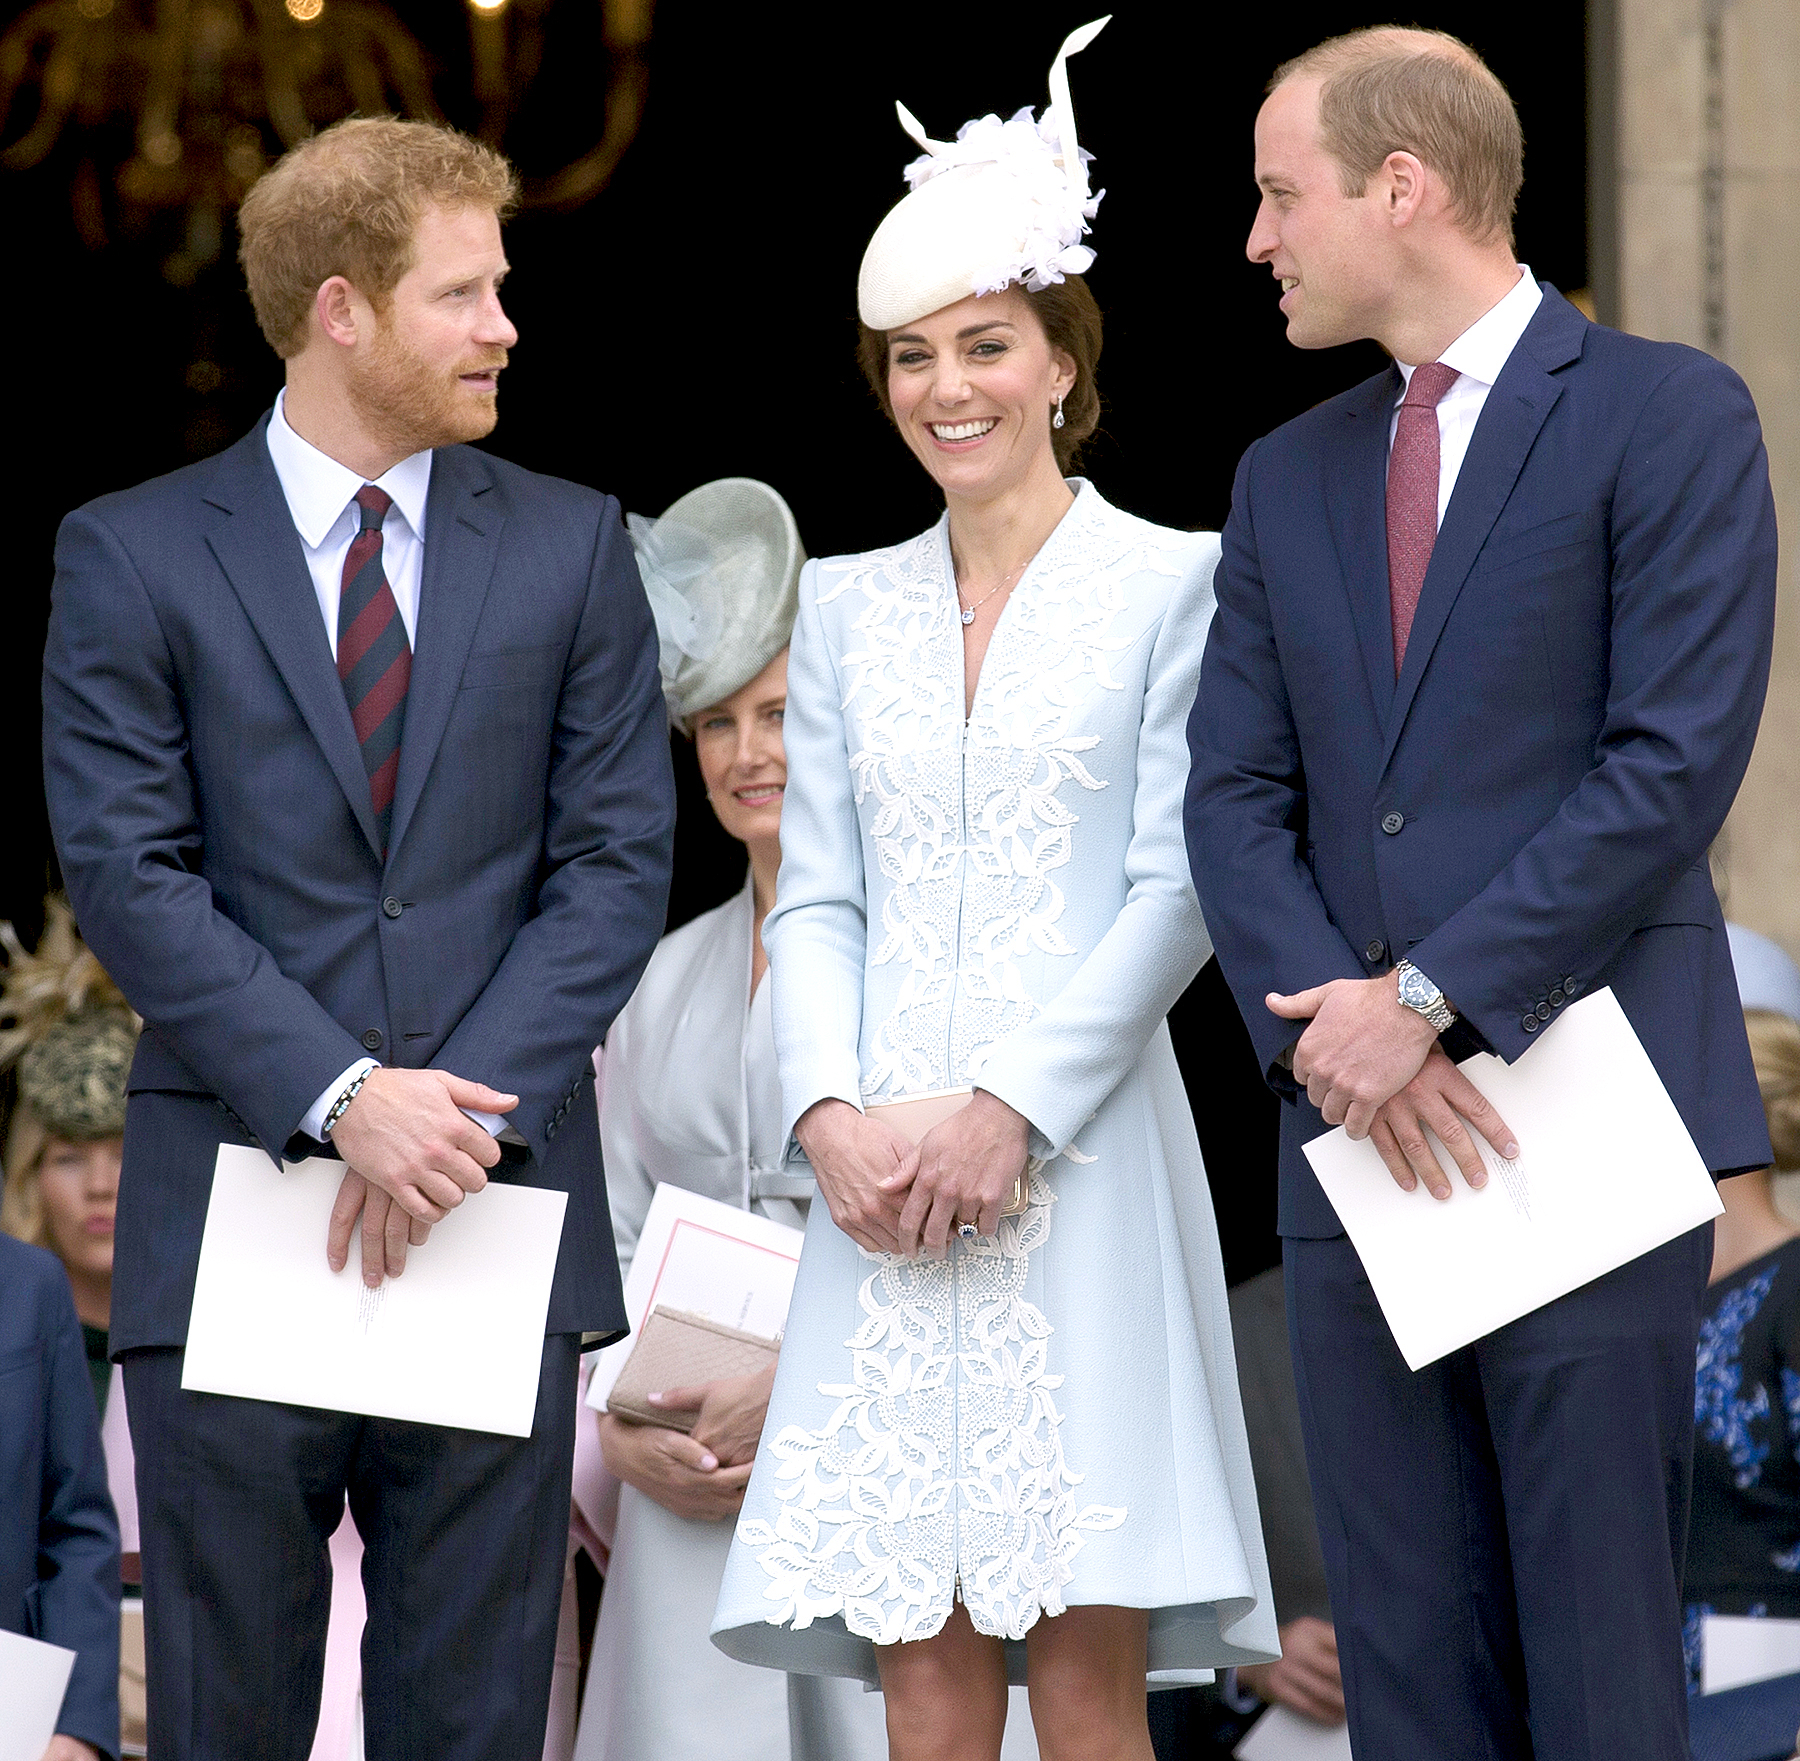 Britain's Prince Harry, Britain's Catherine, Duchess of Cambridge and Britain's Prince William, Duke of Cambridge leave after attending a national service of thanksgiving for the 90th birthday of Britain's Queen Elizabeth II at St Paul's Cathedral in London on June 10, 2016.